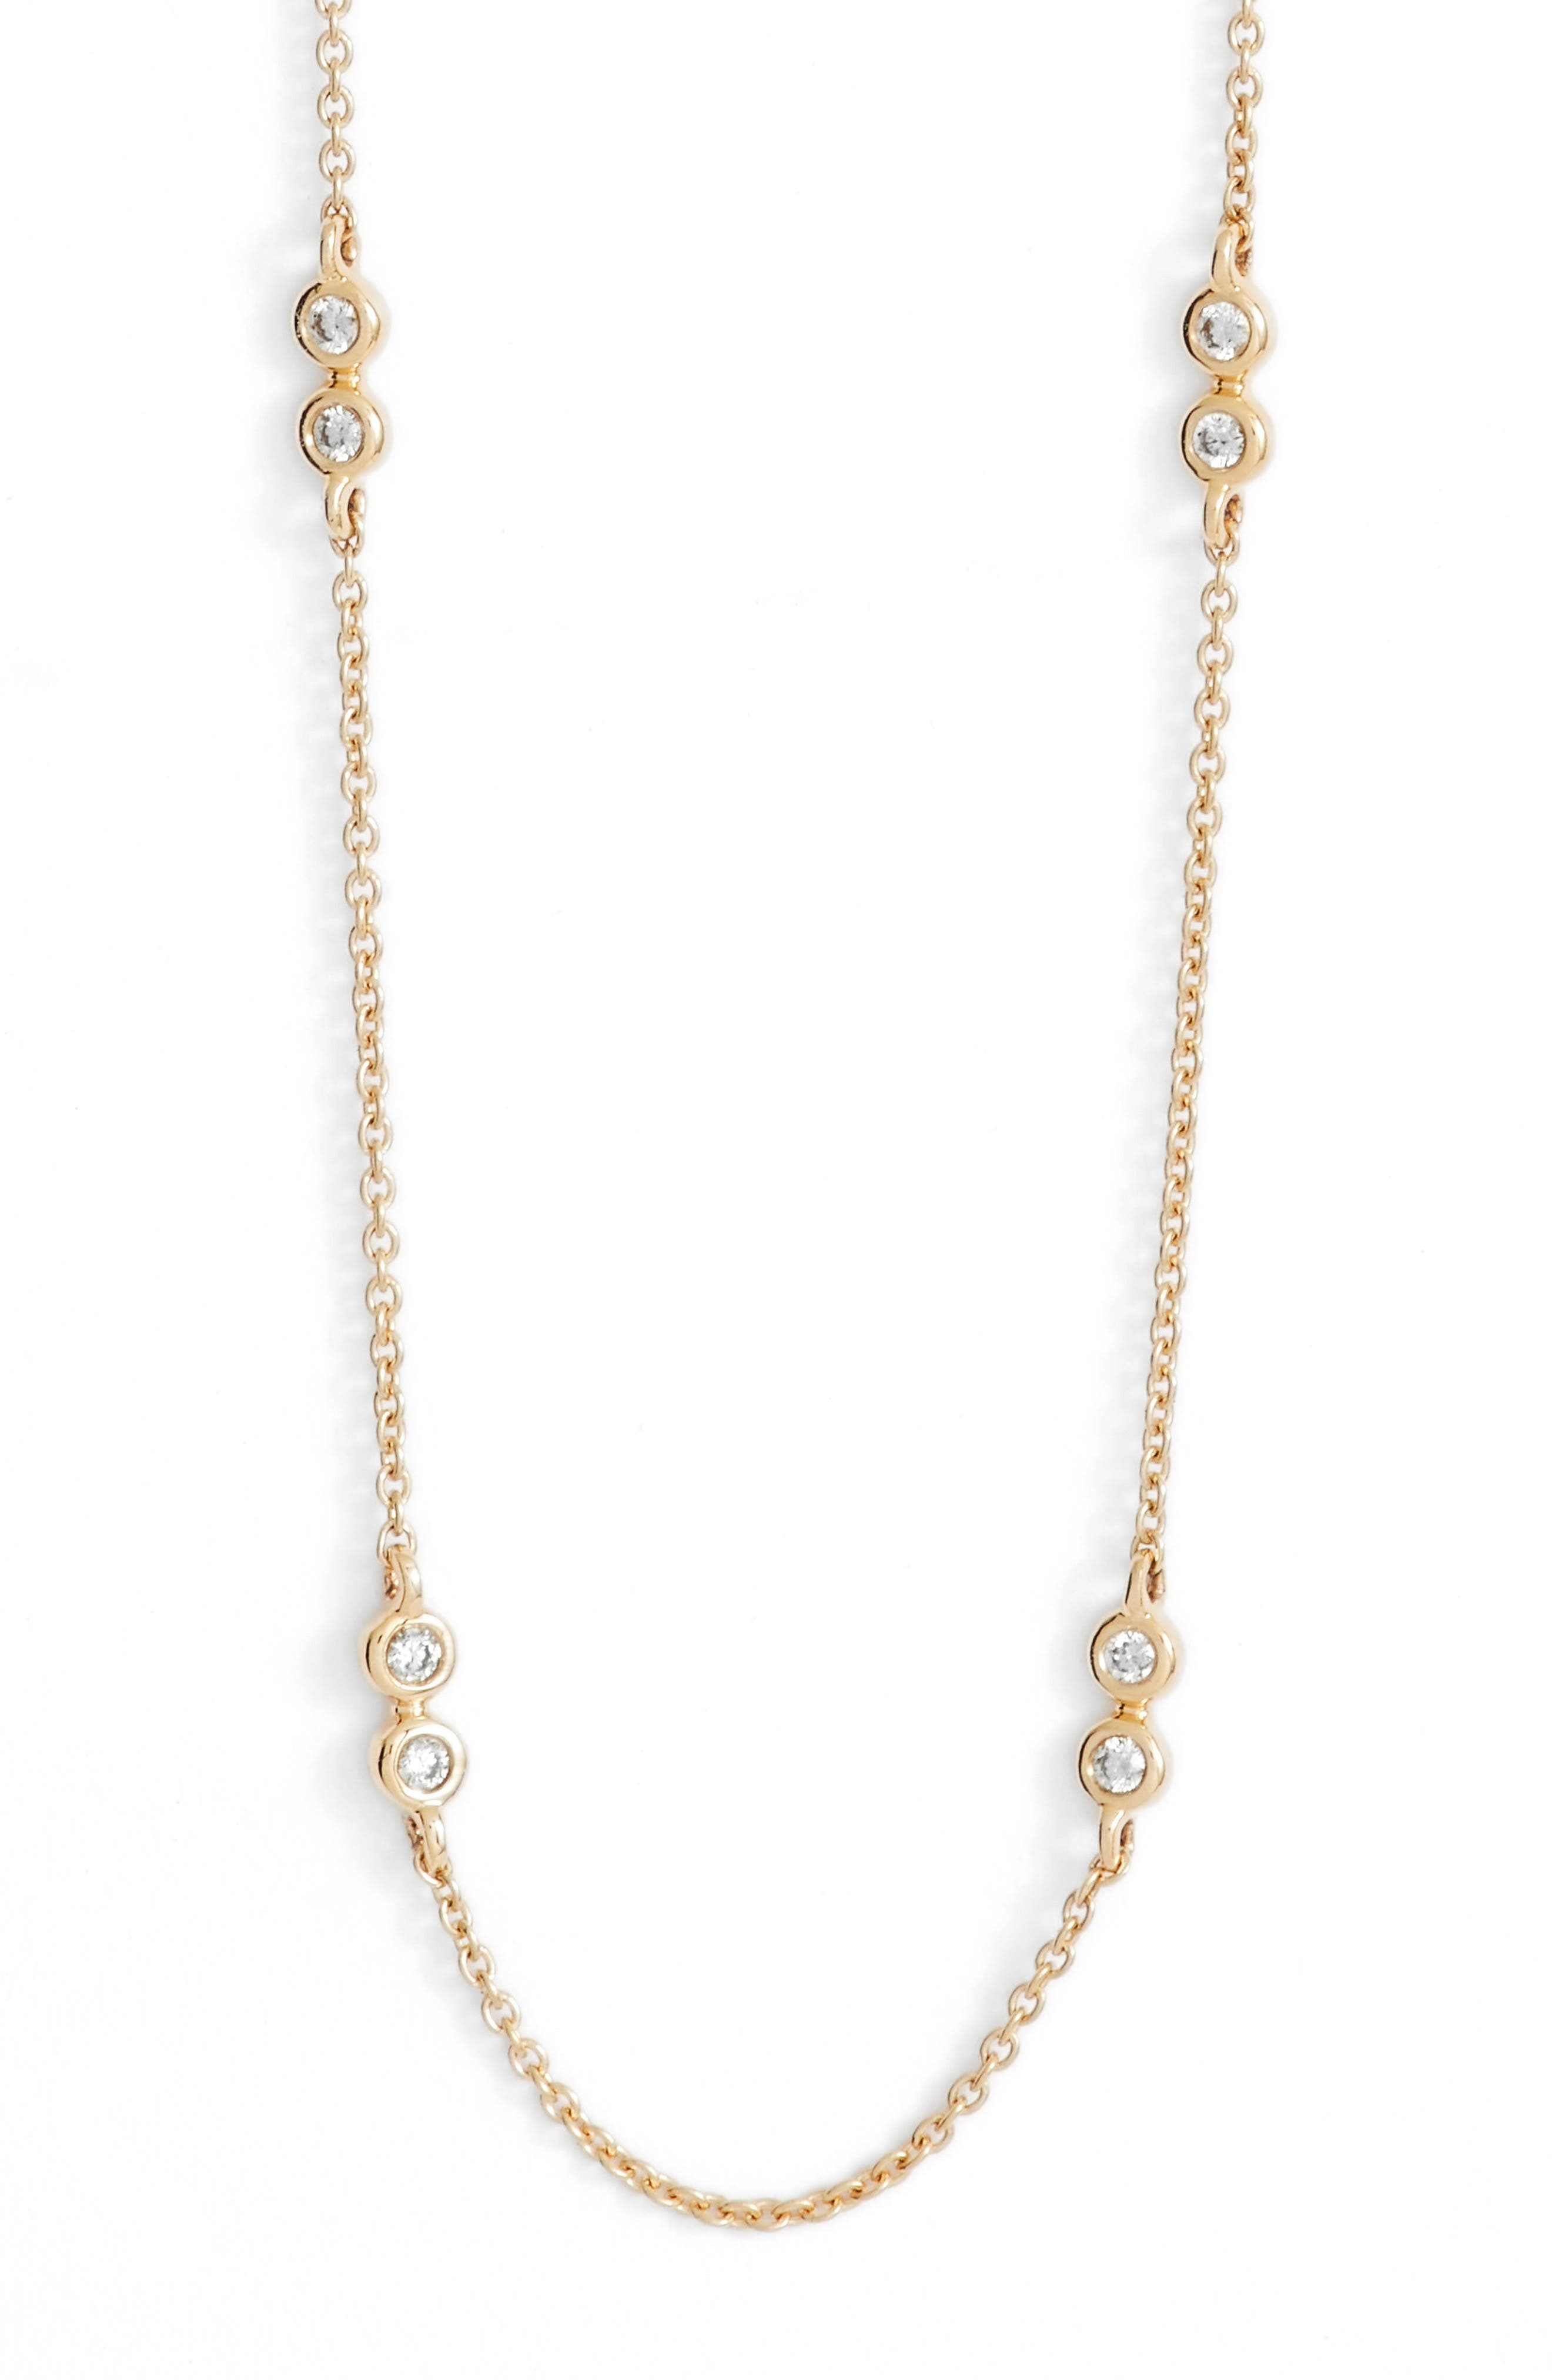 Lulu Jack Diamond Station Necklace,                             Main thumbnail 1, color,                             YELLOW GOLD